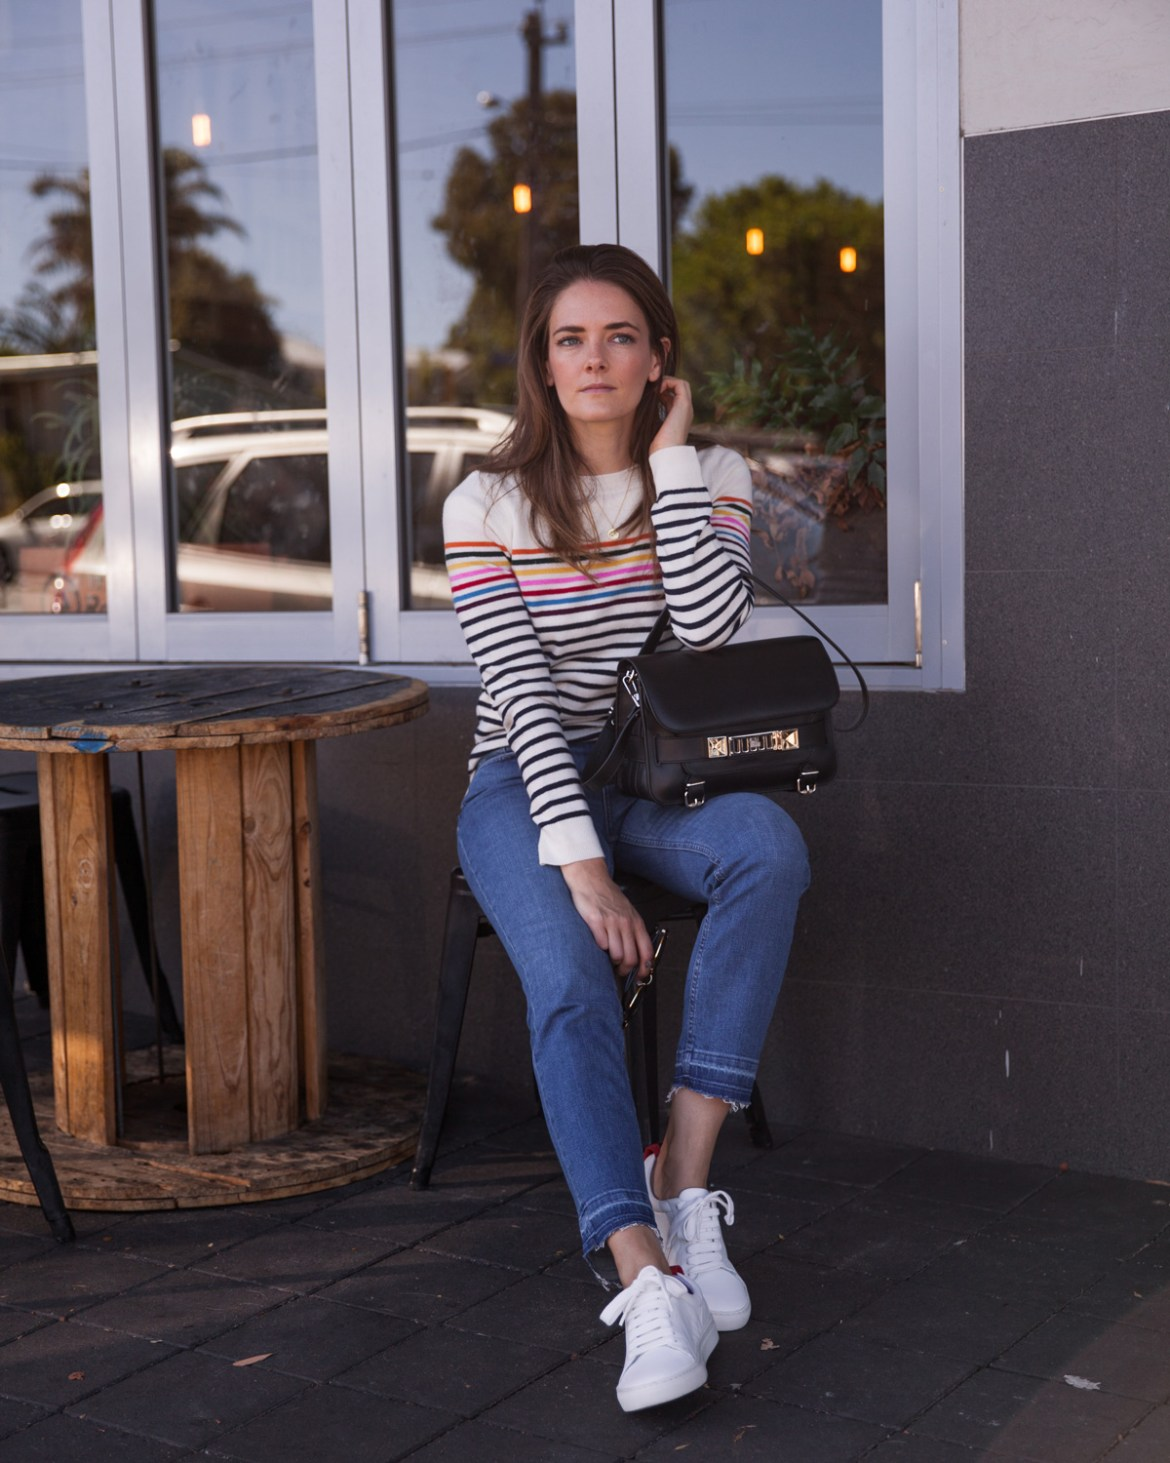 Boden summer 2018 new season jeans, white sneakers and cashmere stripe knit top and PS11 bag worn by Inspiring Wit blogger Jenelle Witty